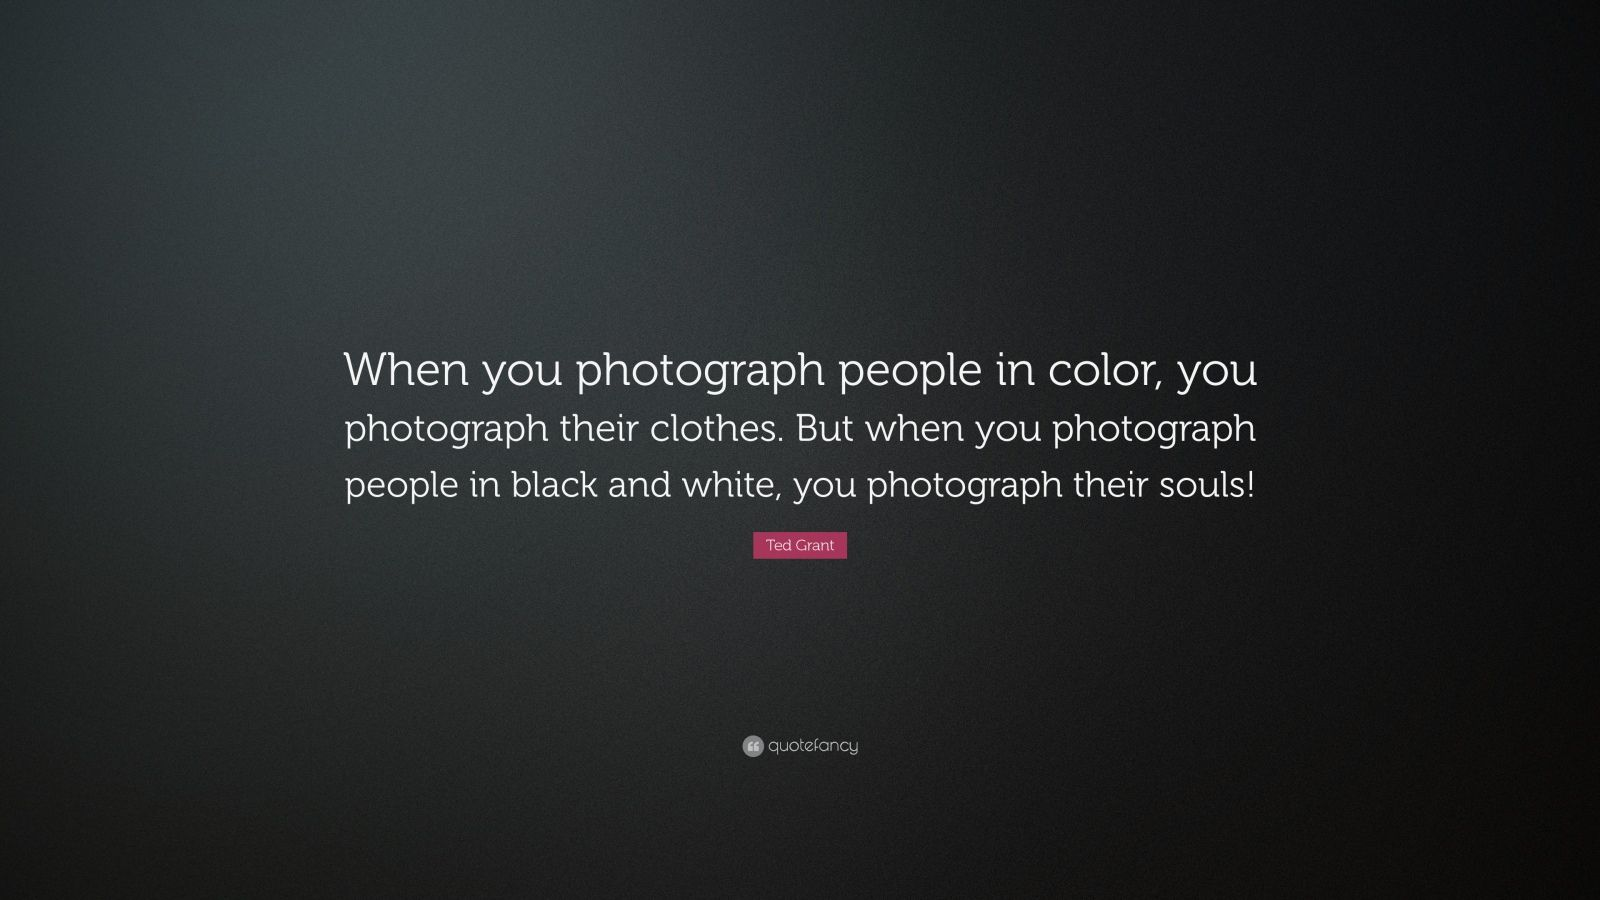 """Ted Grant Quote: """"When you photograph people in color, you photograph their clothes. But when you photograph people in black and white, you photograph their souls!"""""""